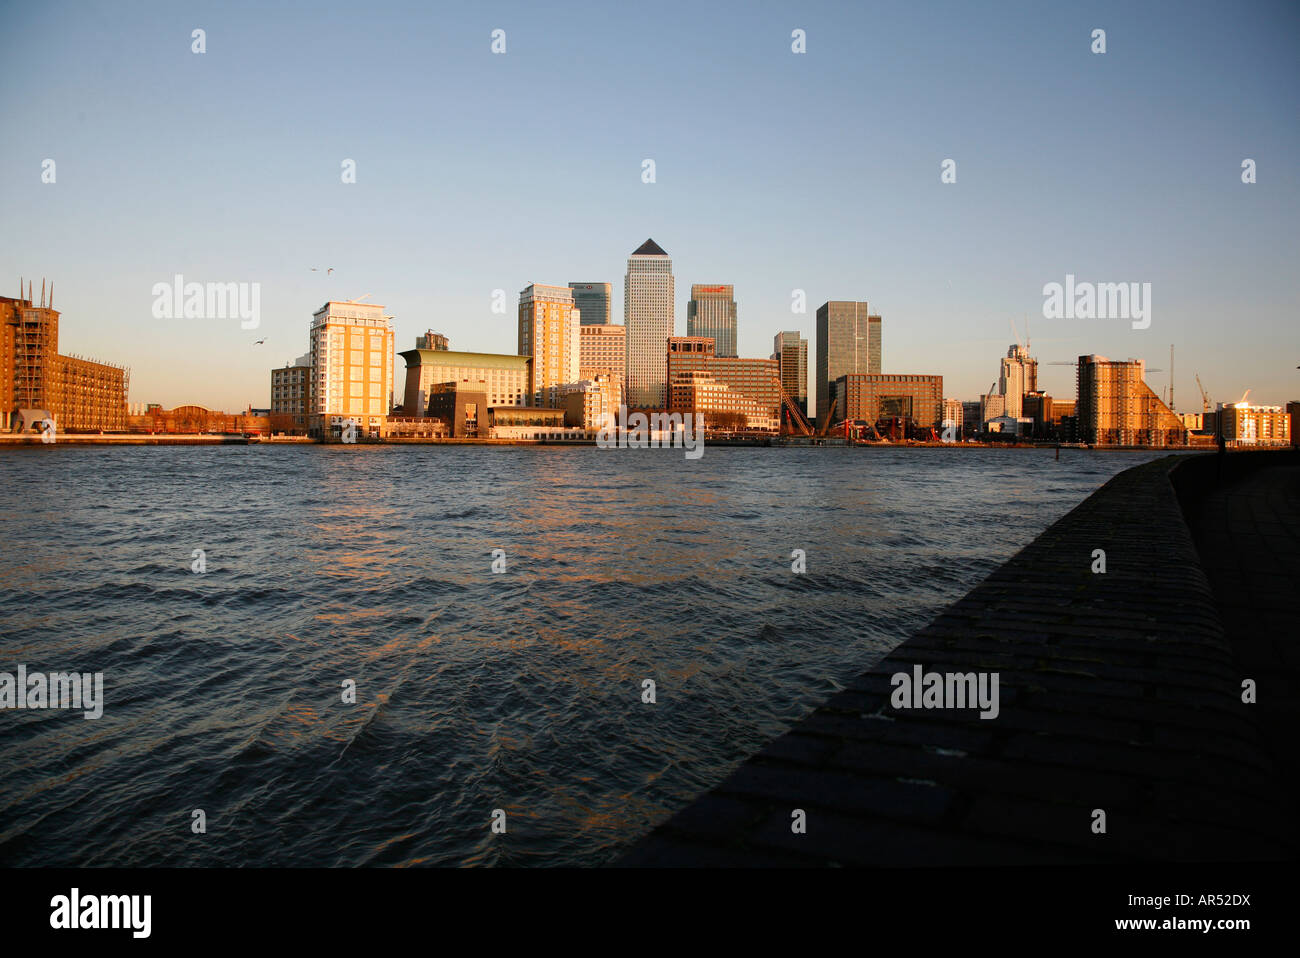 View across the River Thames in London to Canary Wharf Taken from Rotherhithe - Stock Image